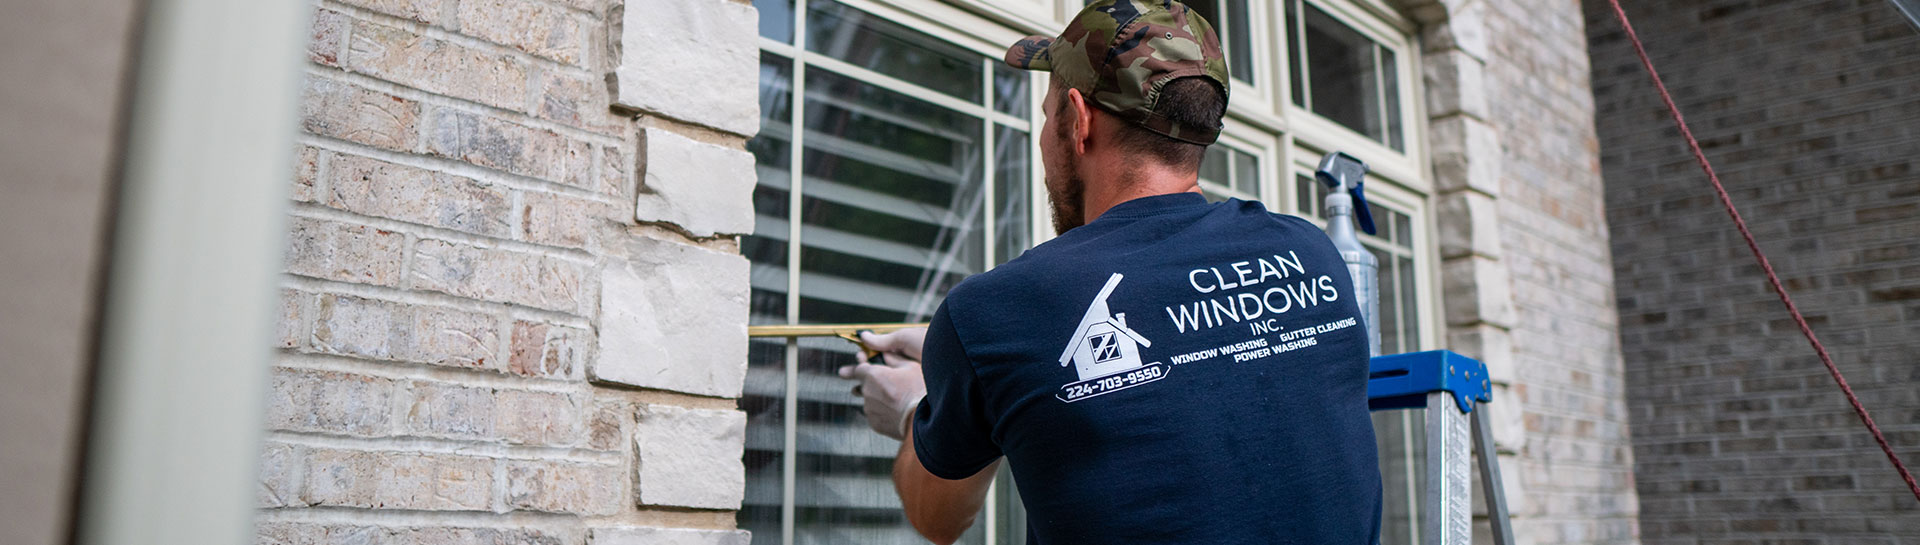 Why You Should Clean Your Windows